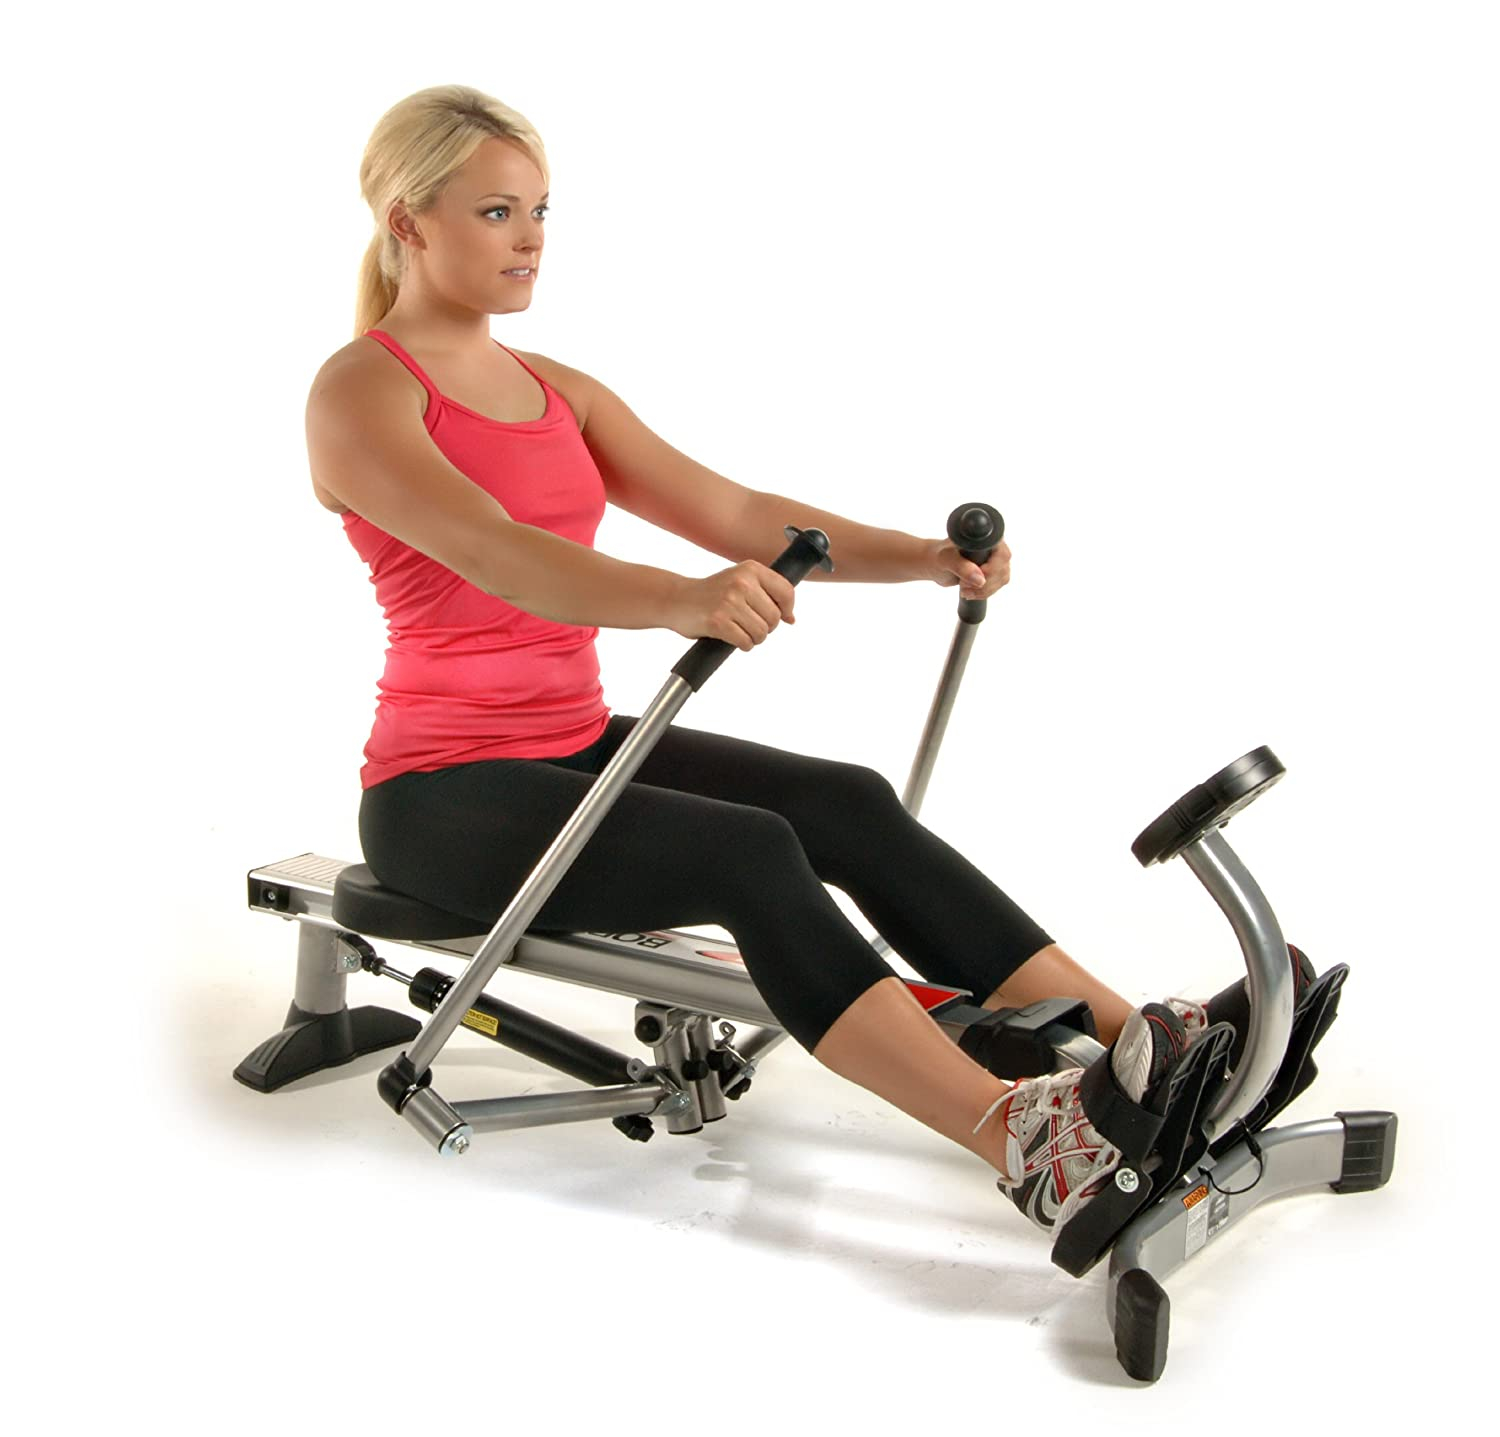 rowing machine for home exercise